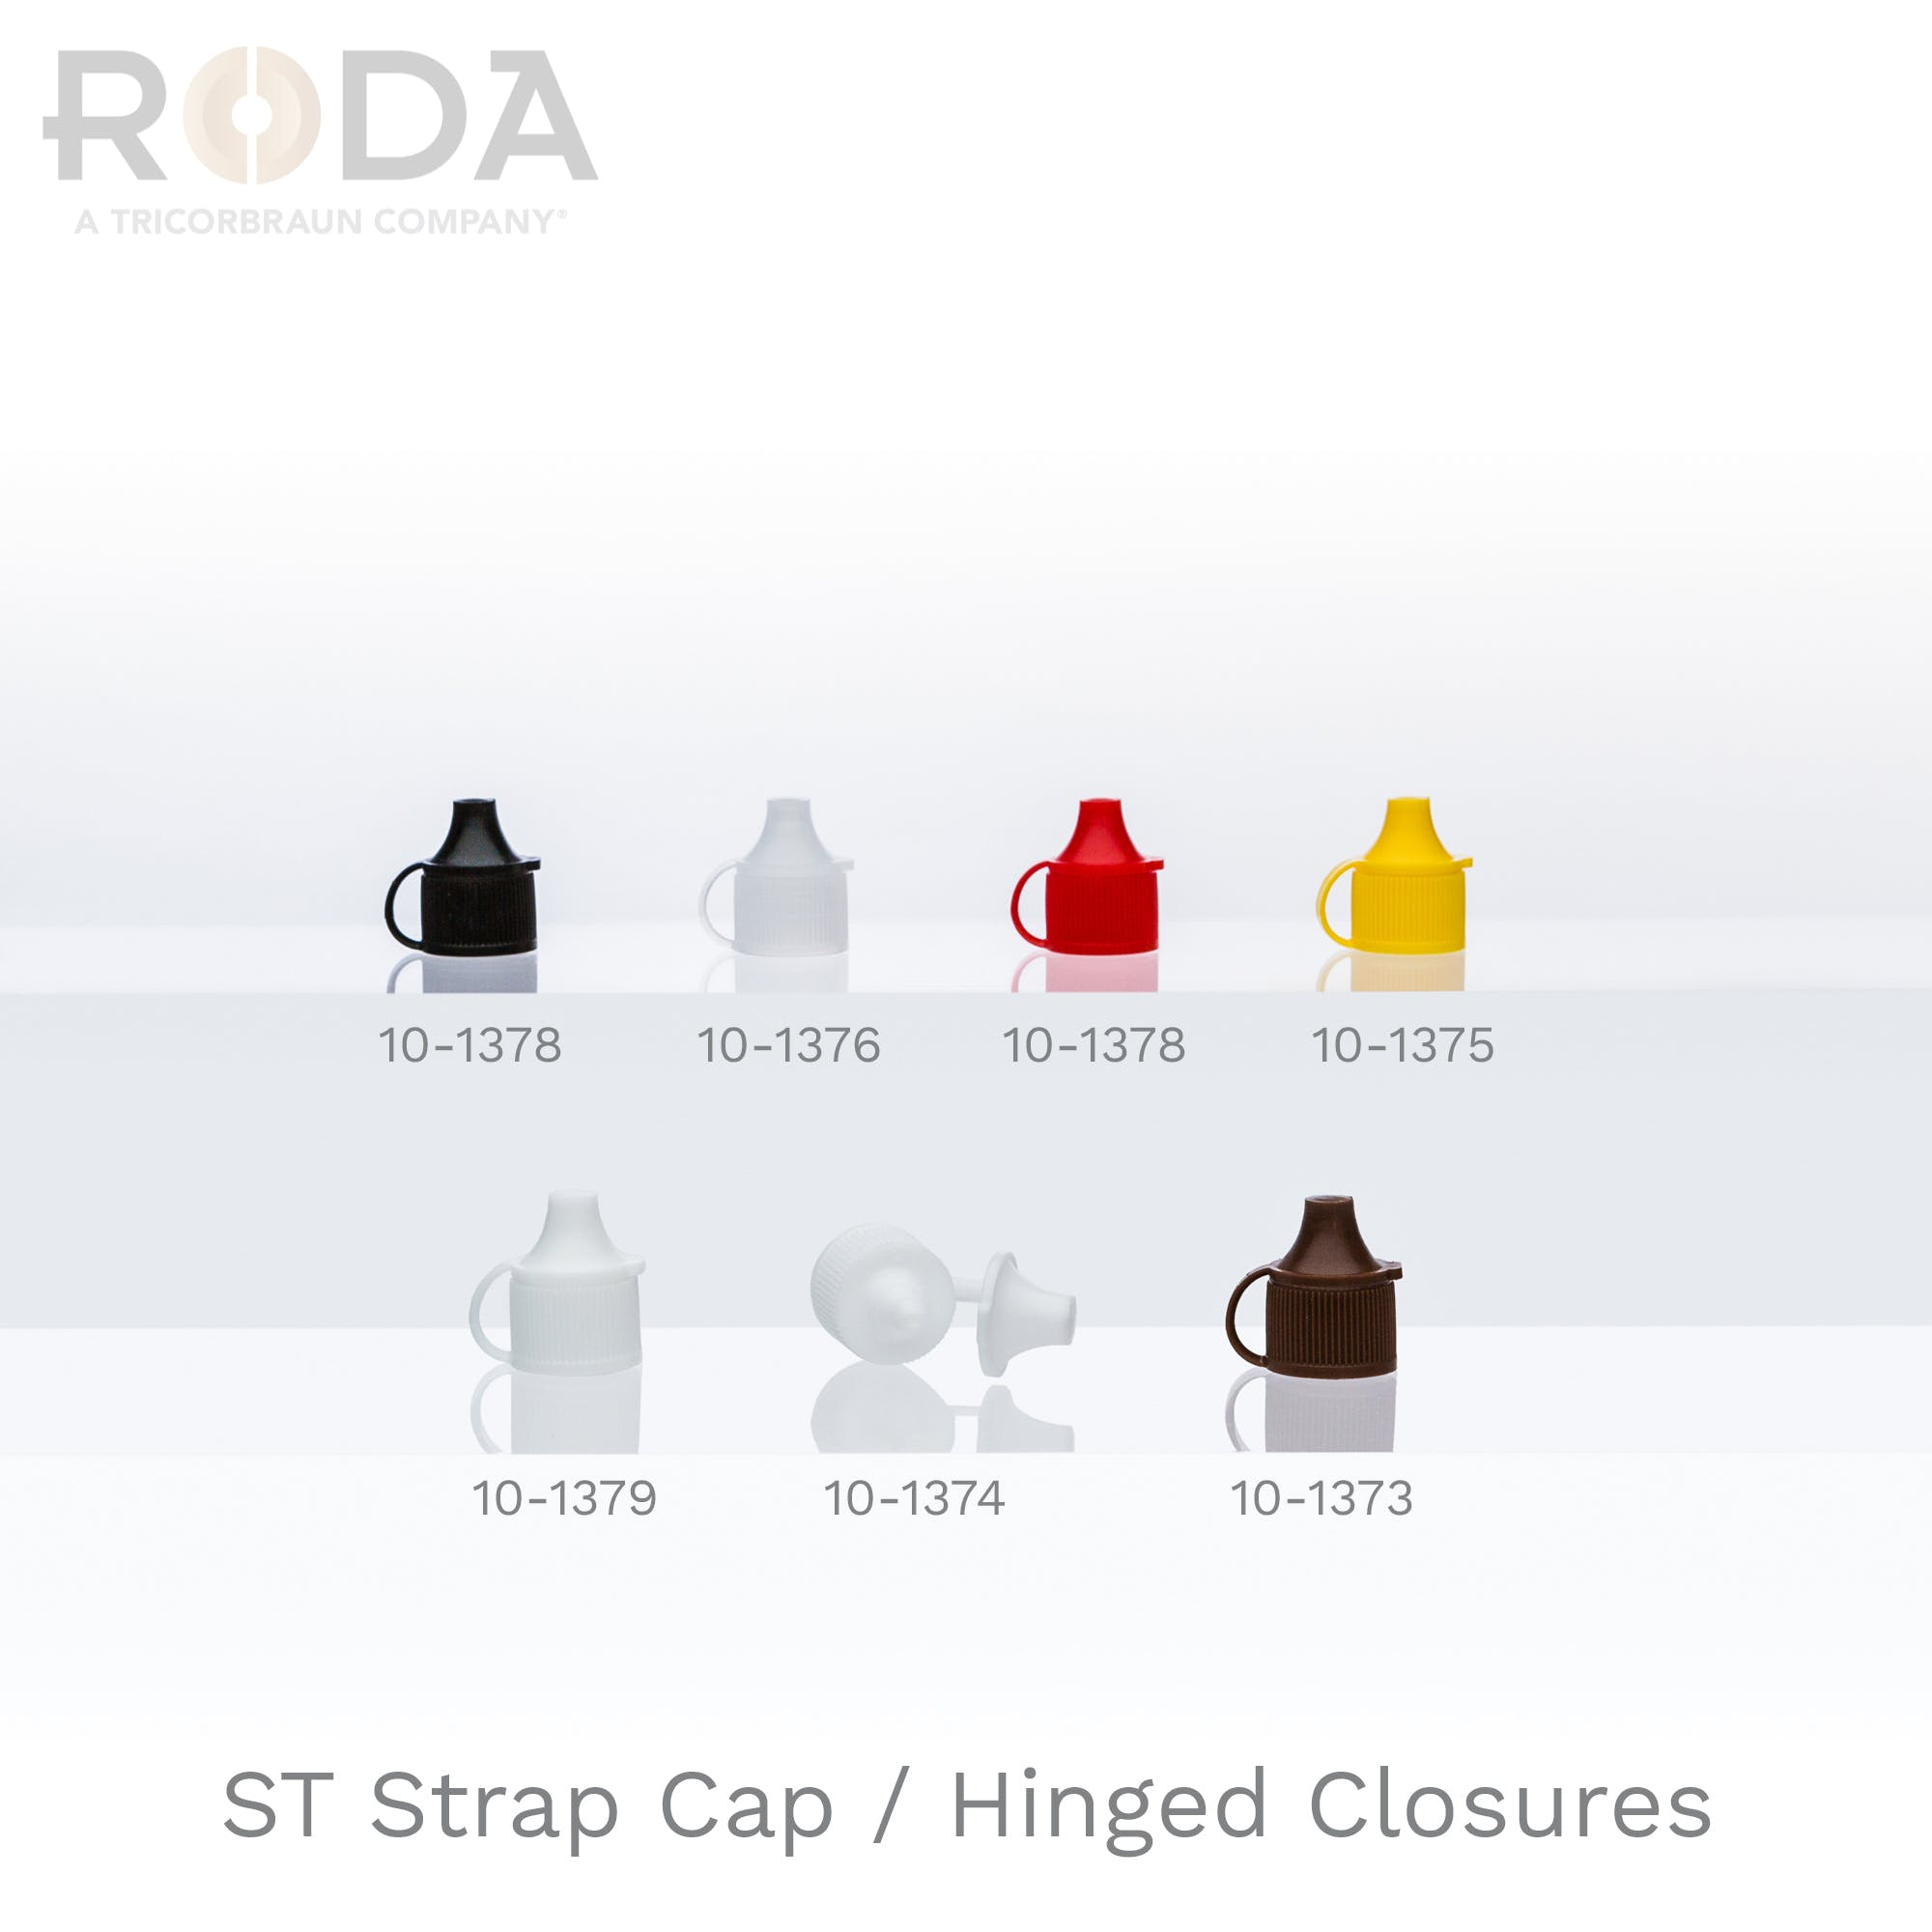 ST Strap Cap / Hinged Closures